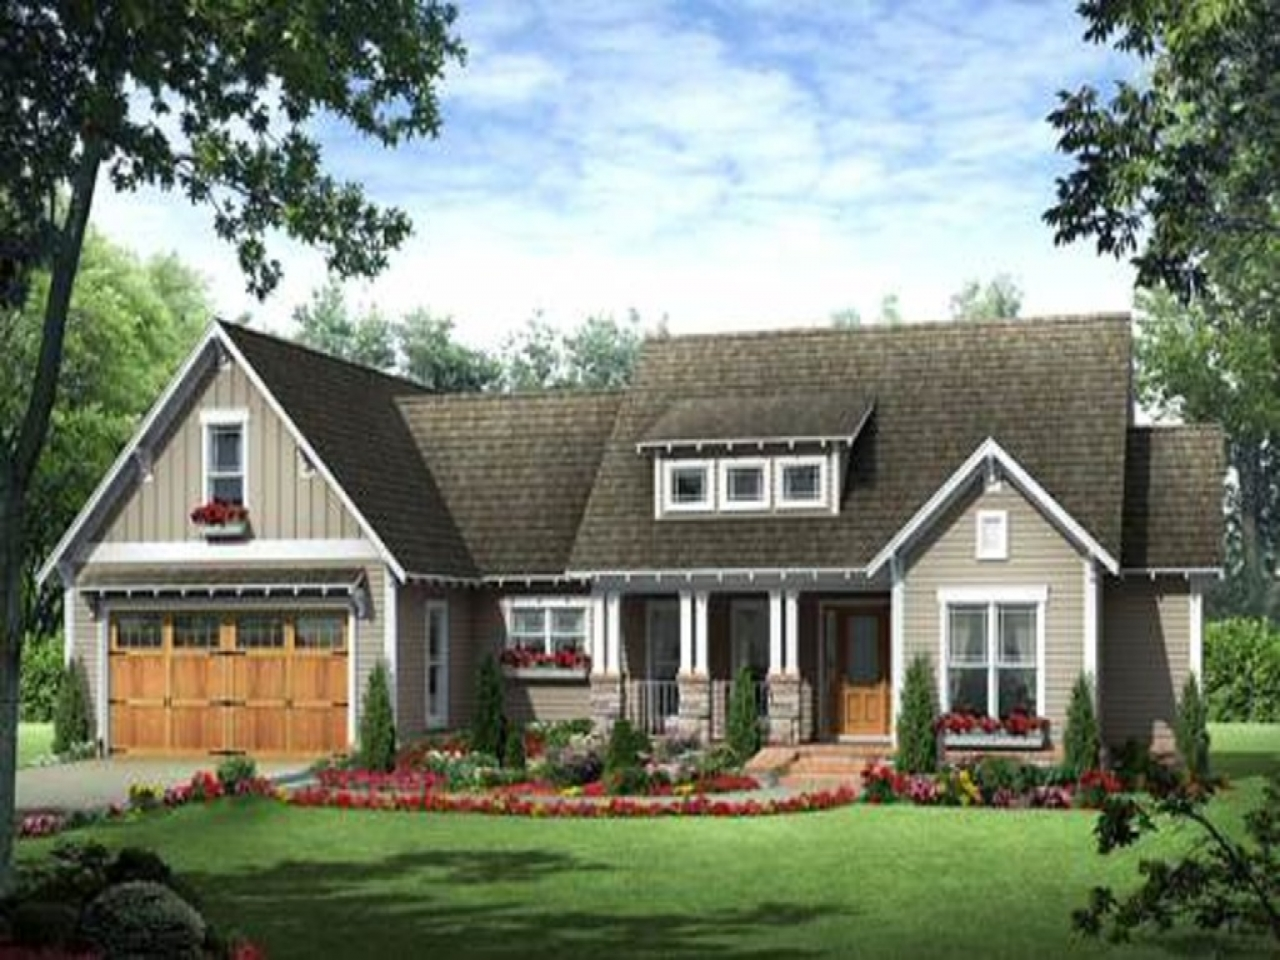 Craftsman rambler house plans craftsman ranch house plans for Craftsman rambler house plans